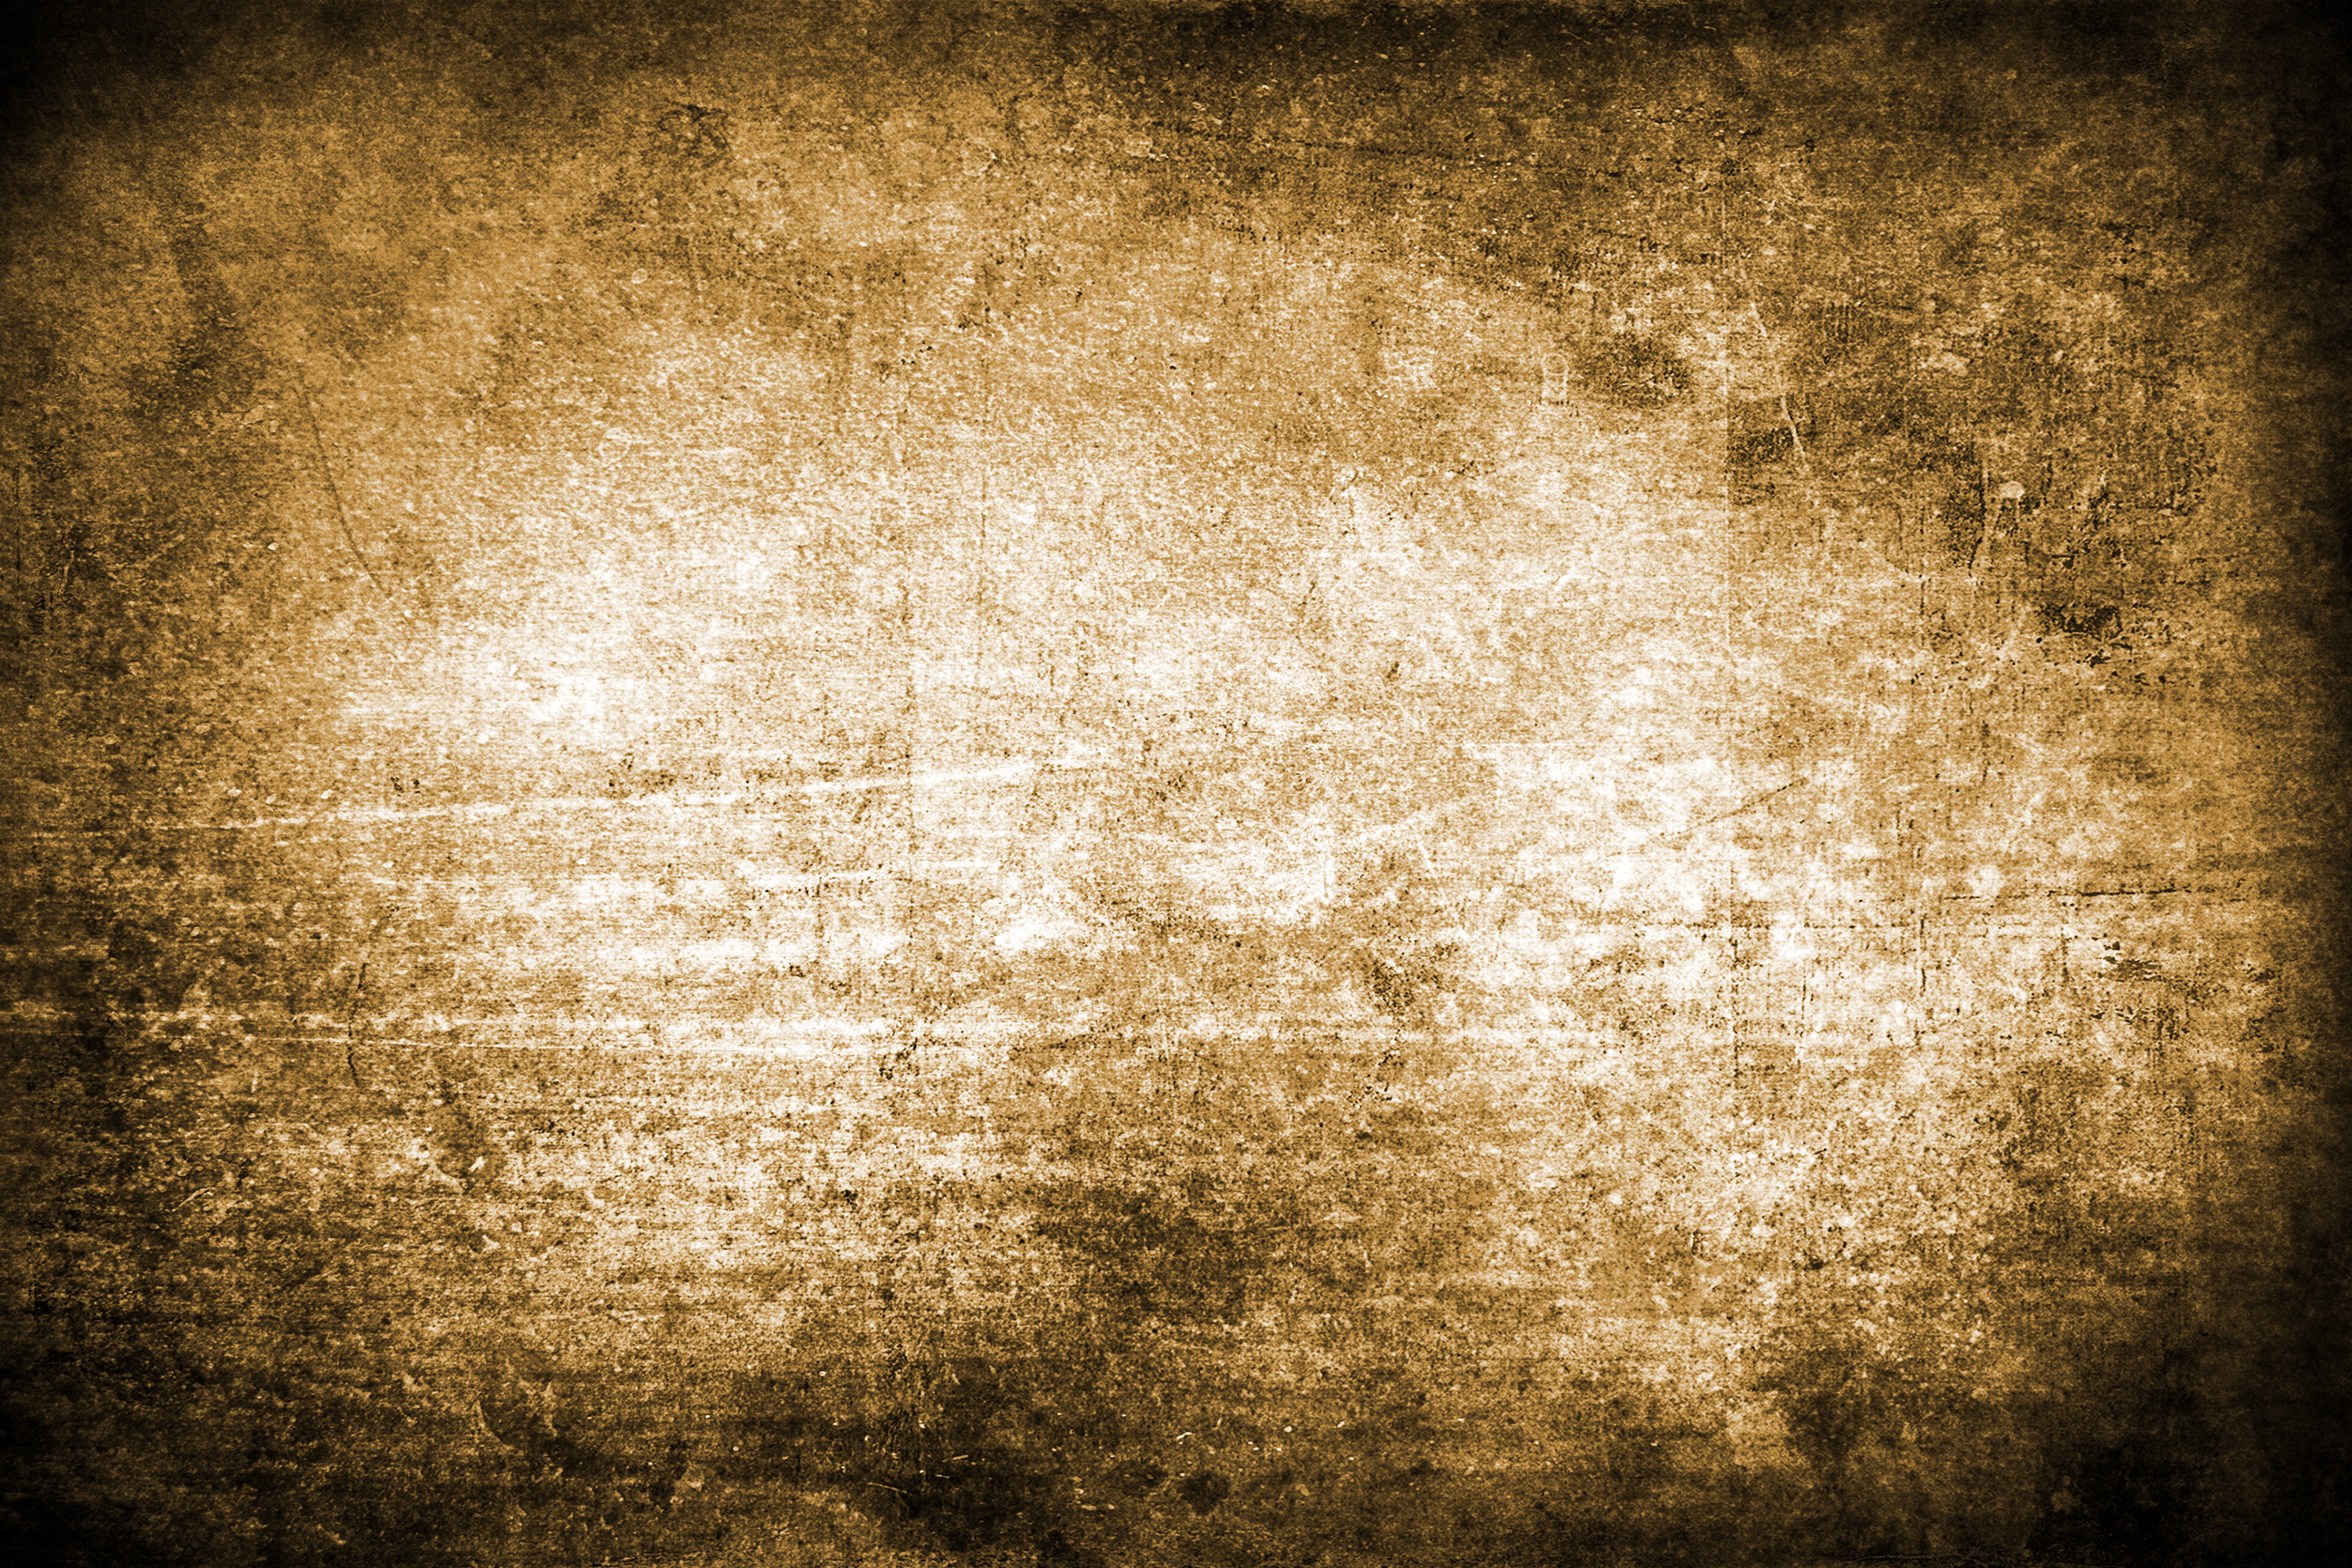 high resolution Grungy Sepia Toned textures that I created from 4800x3200